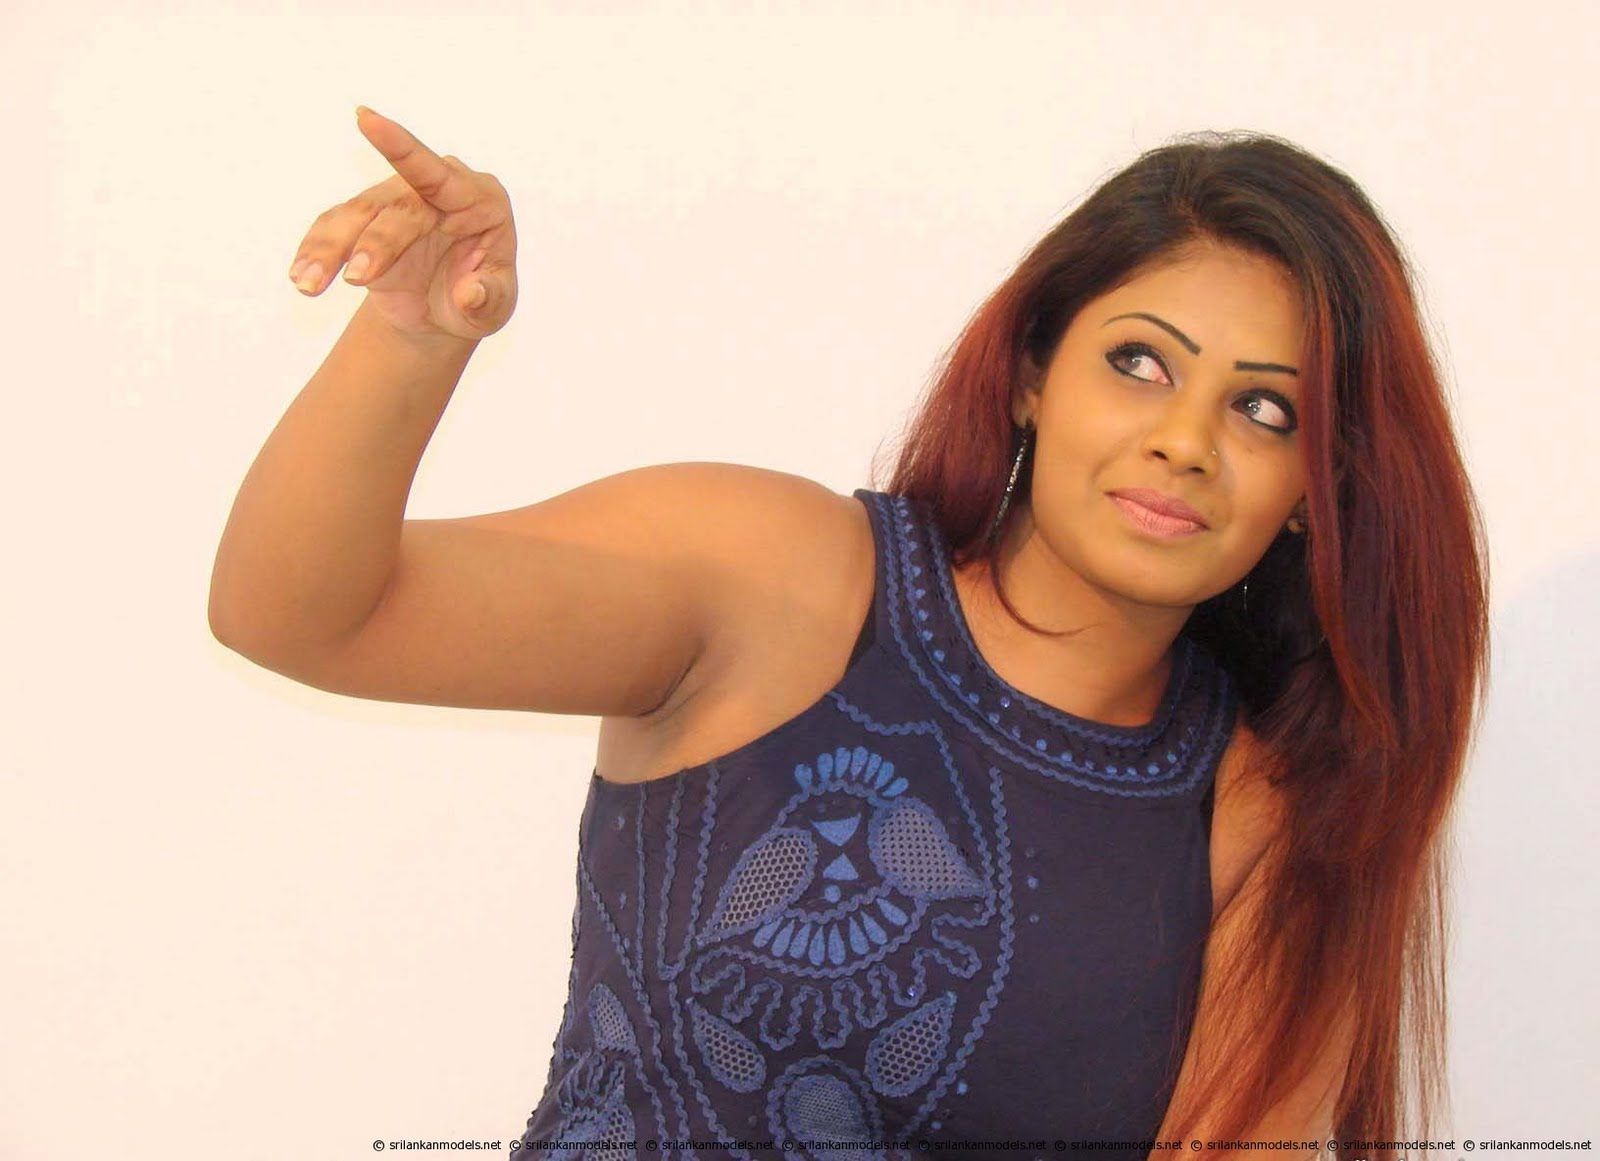 Sri Lankan upcoming Model Wijayanthi Madubashini's image collection